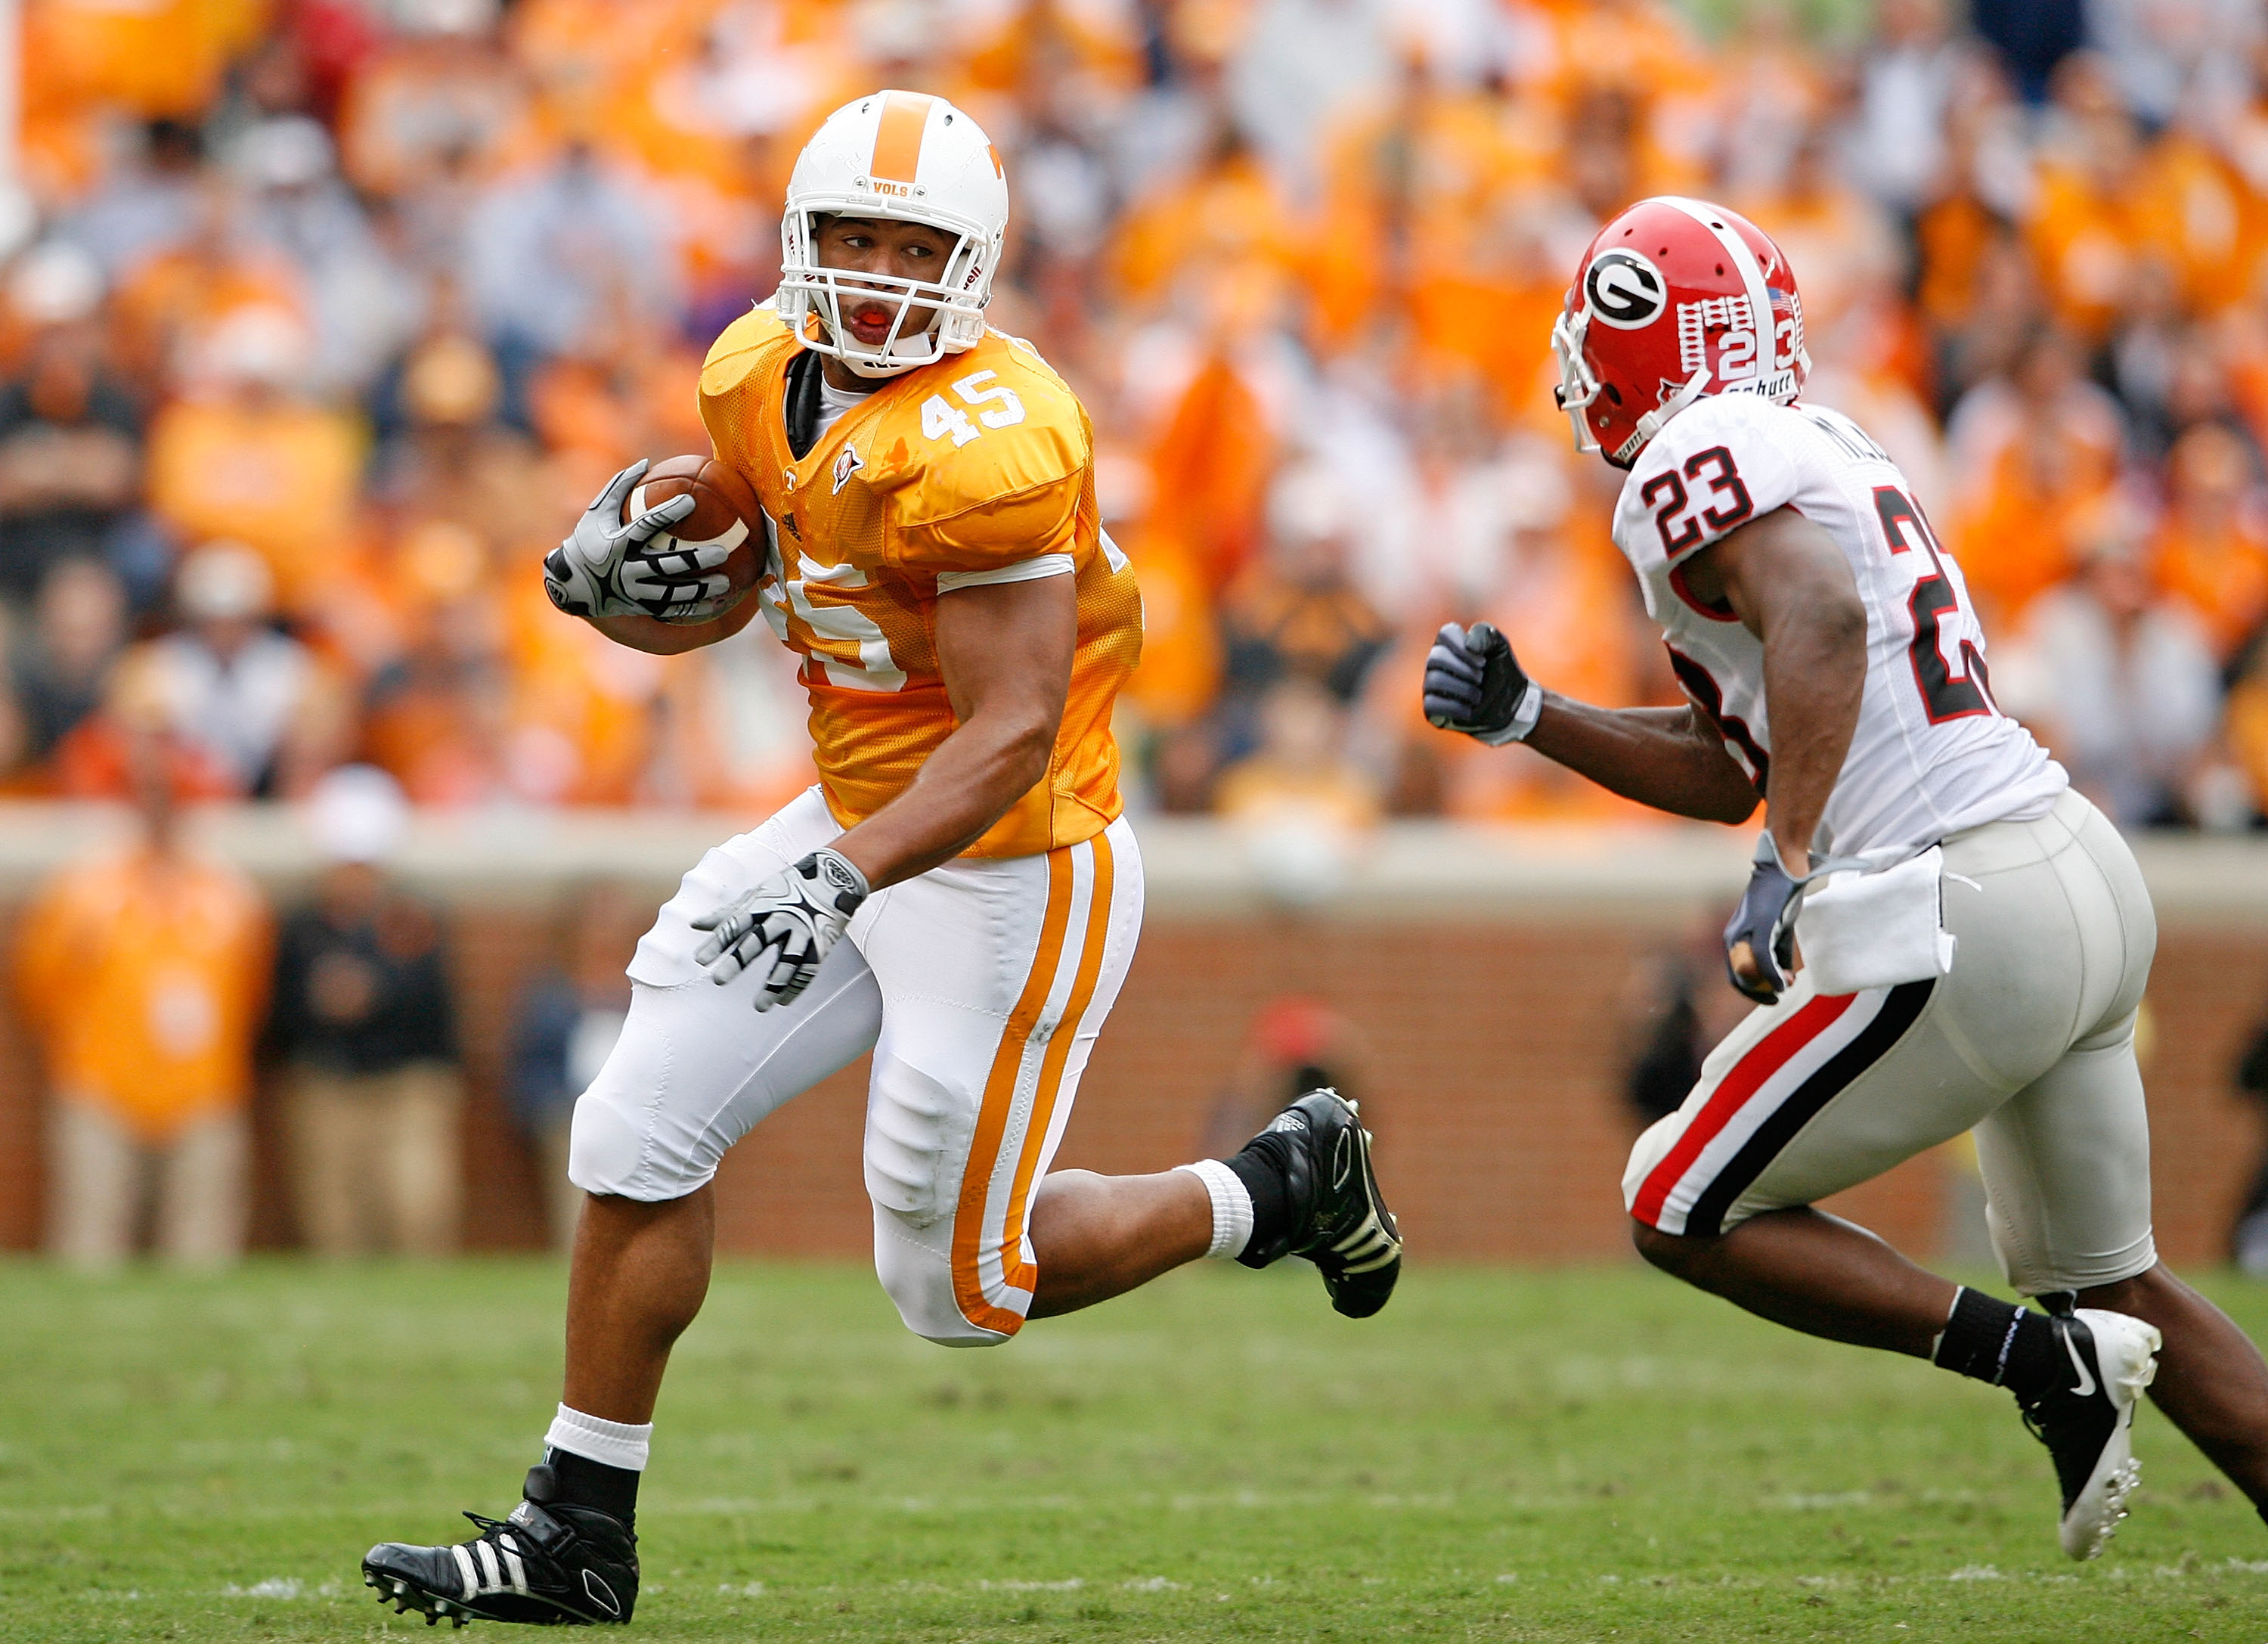 KNOXVILLE, TN - OCTOBER 10: Kevin Cooper #45 of the Tennessee Volunteers runs with the ball while defended by Prince Miller #23 of the Georgia Bulldogs during the SEC game at Neyland Stadium on October 10, 2009 in Knoxville, Tennessee. (Photo by Andy Lyon